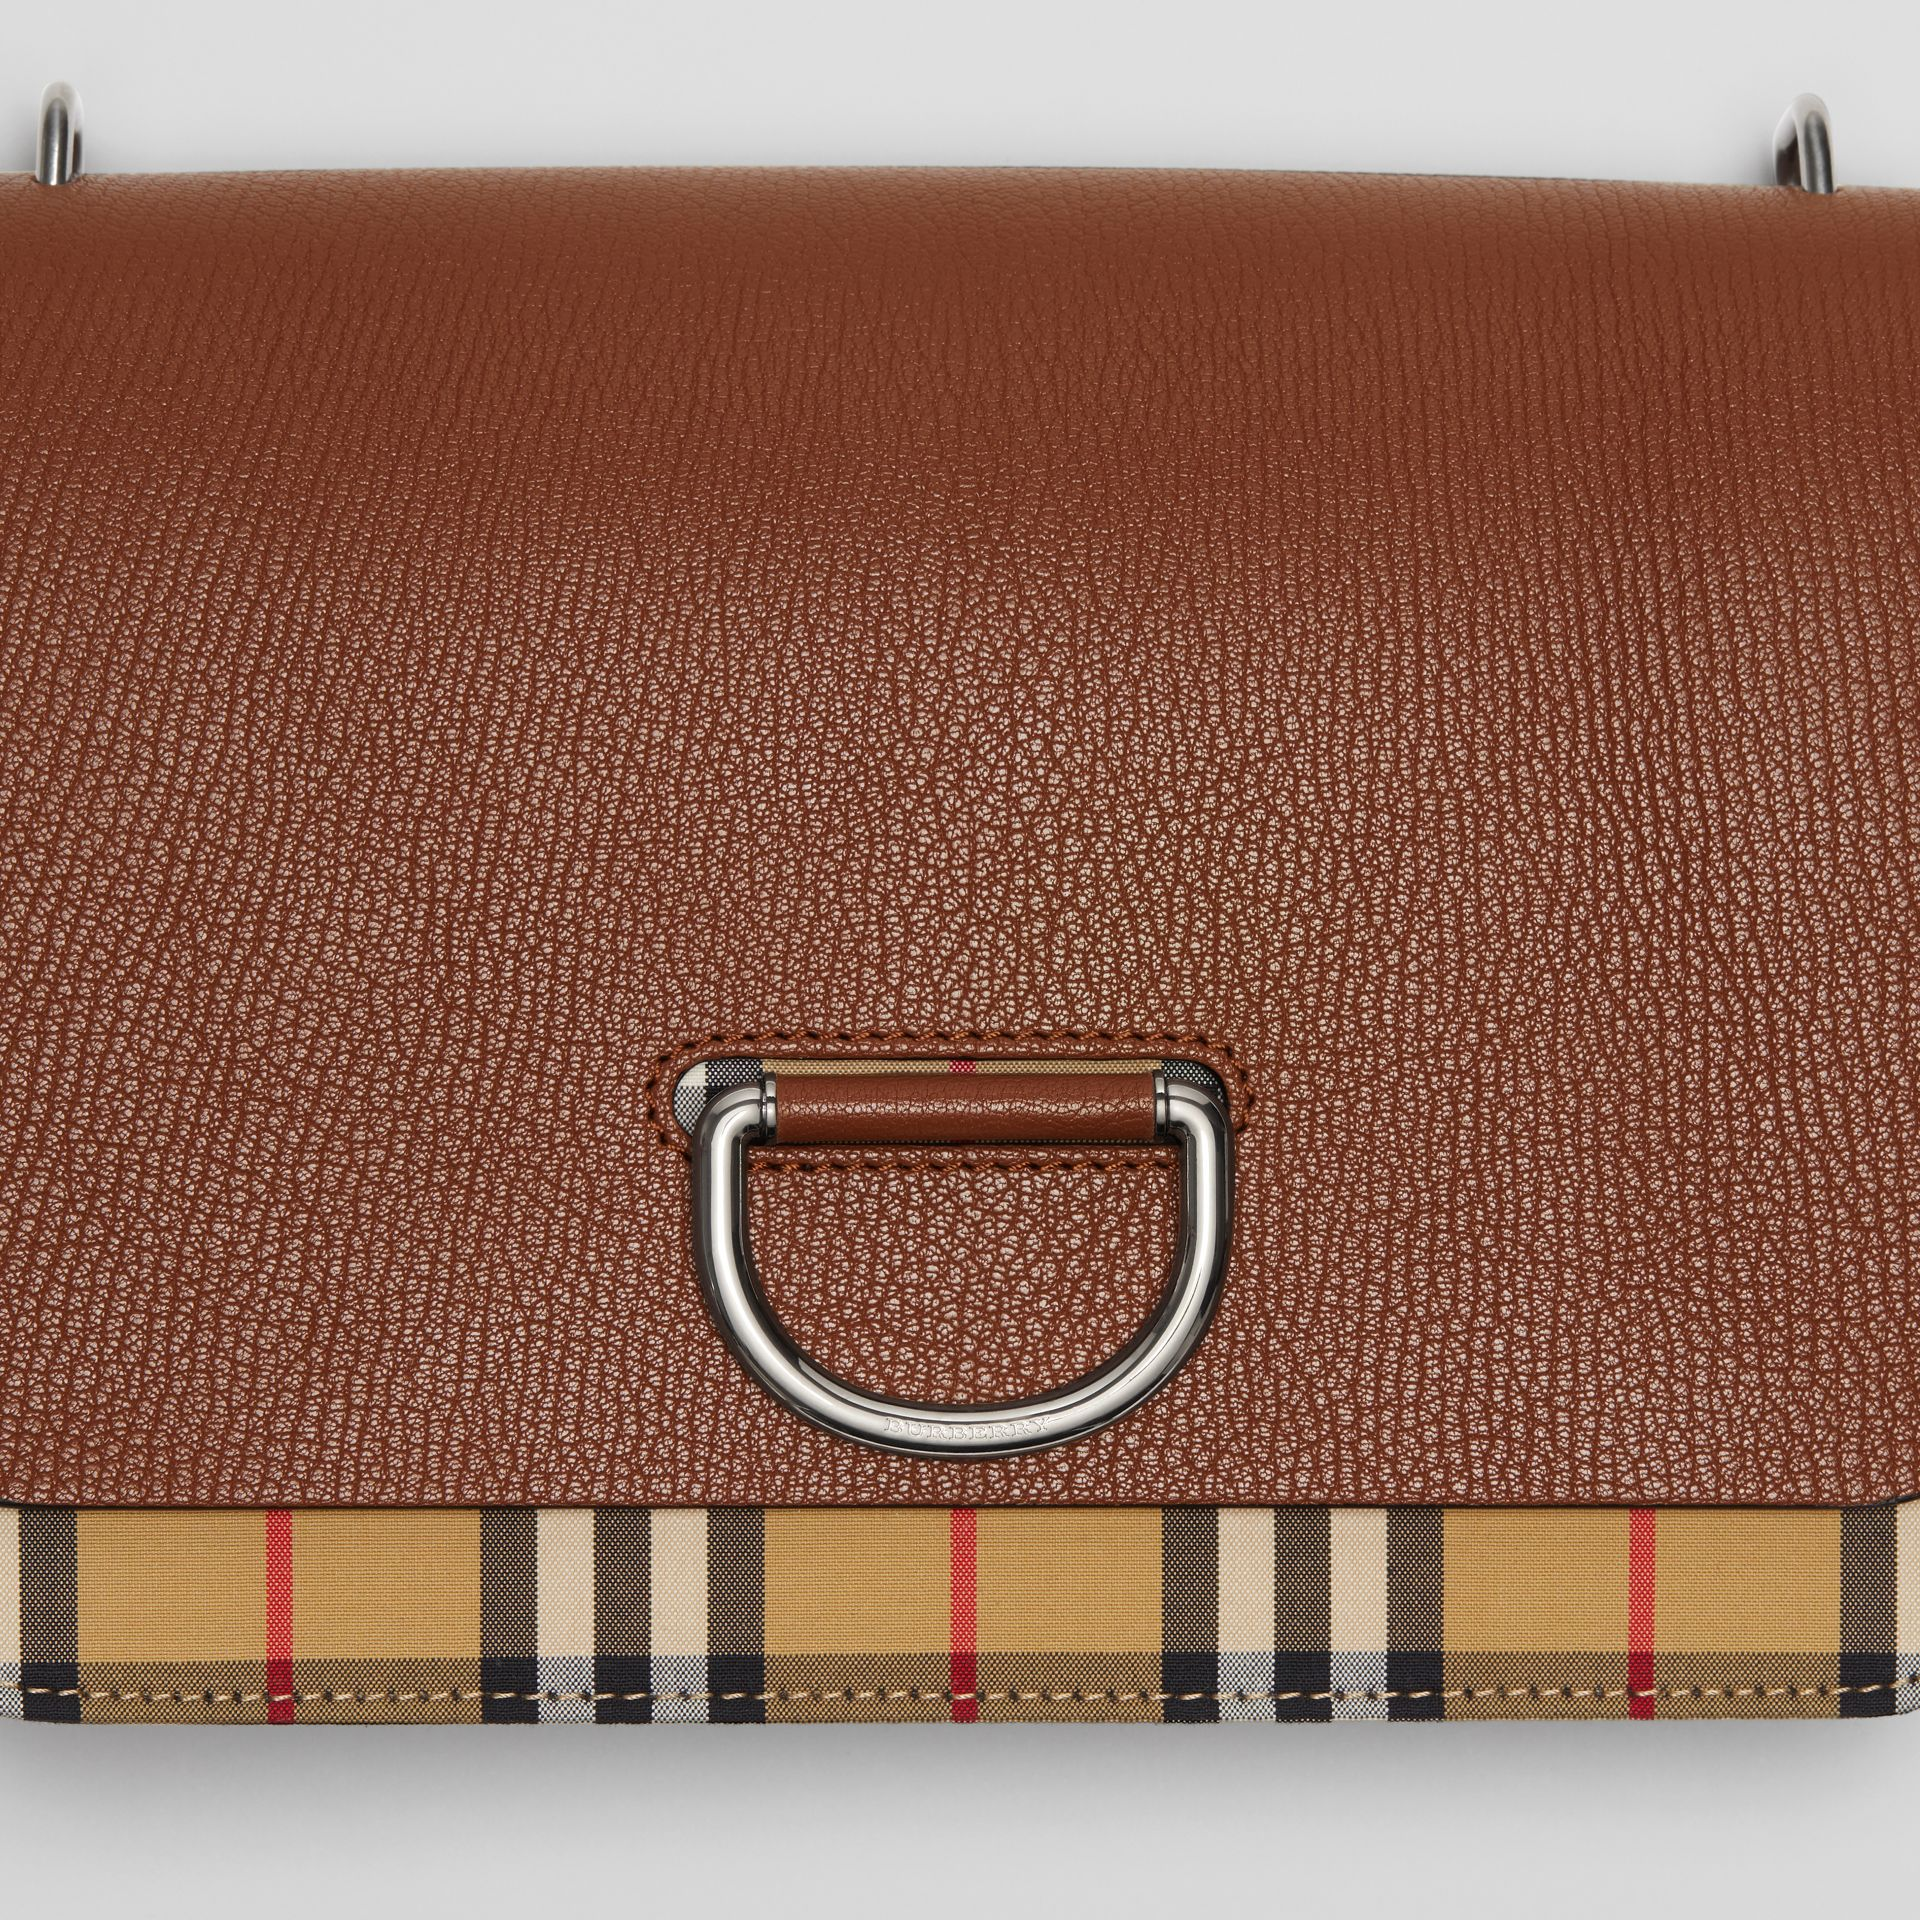 Borsa The D-ring media in pelle con motivo Vintage check (Marroncino/nero) - Donna | Burberry - immagine della galleria 1